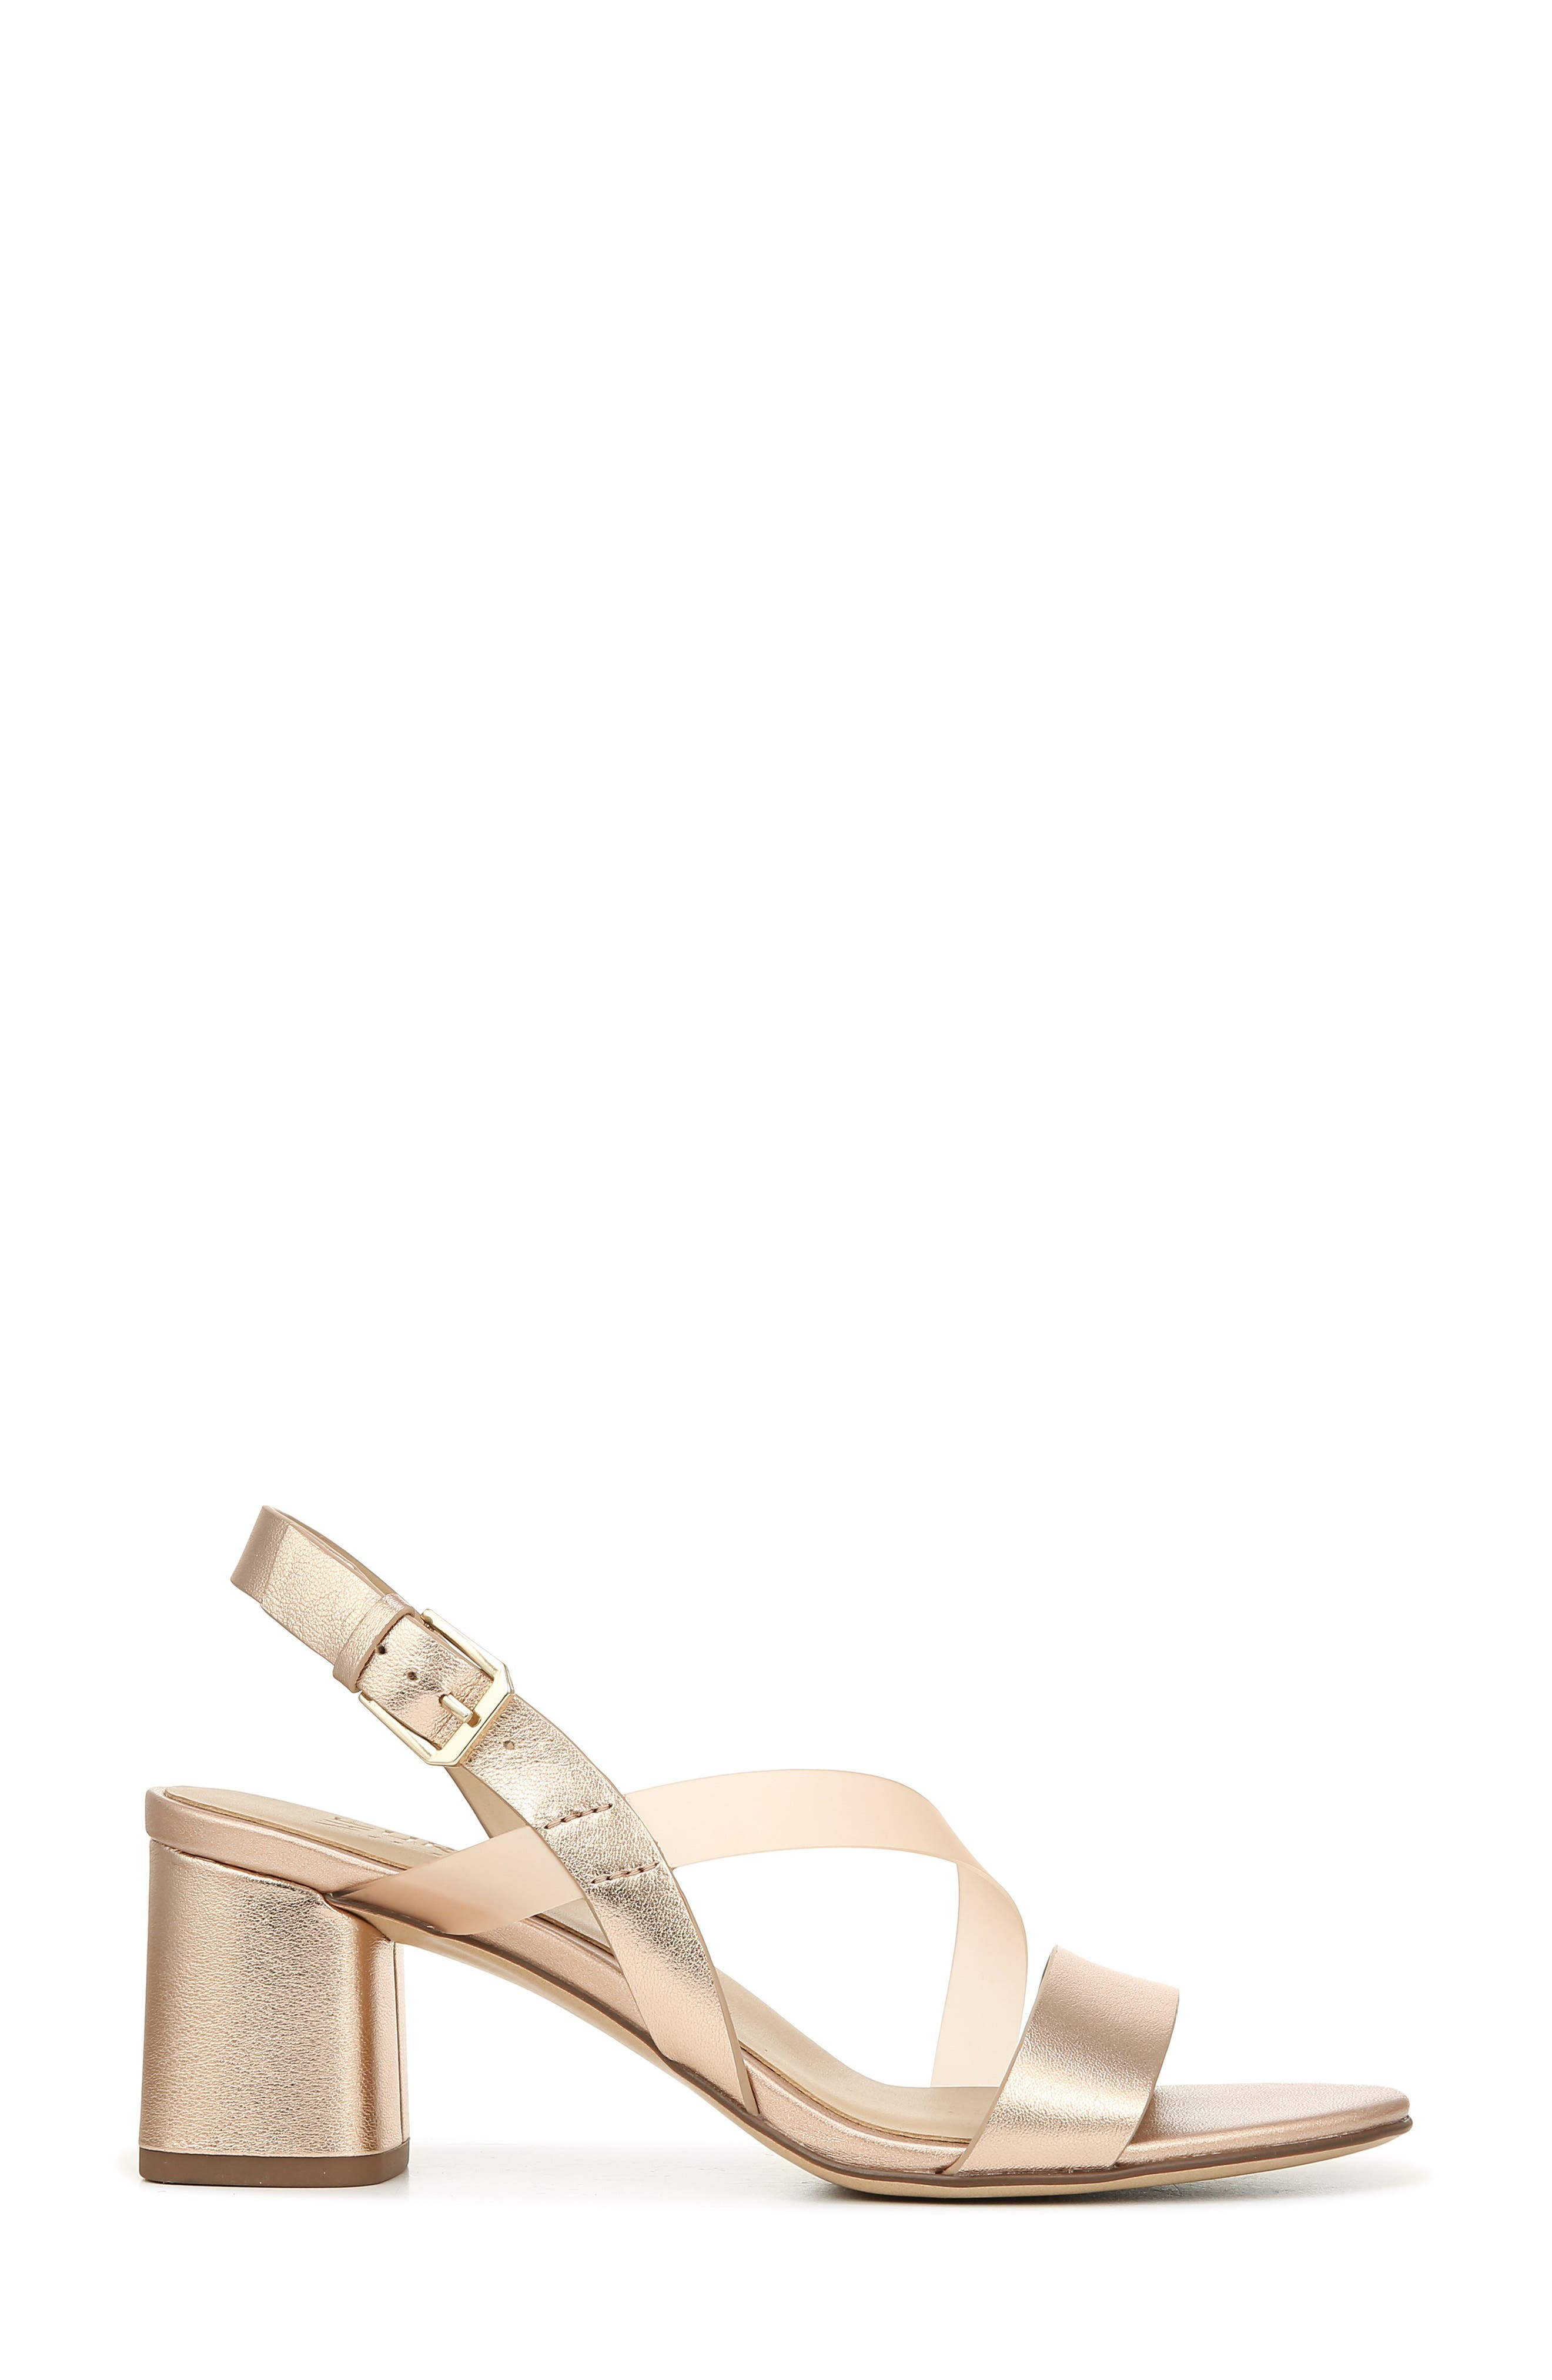 NATURALIZER, Arianna Block Heel Sandal, Alternate thumbnail 3, color, ROSE GOLD LEATHER